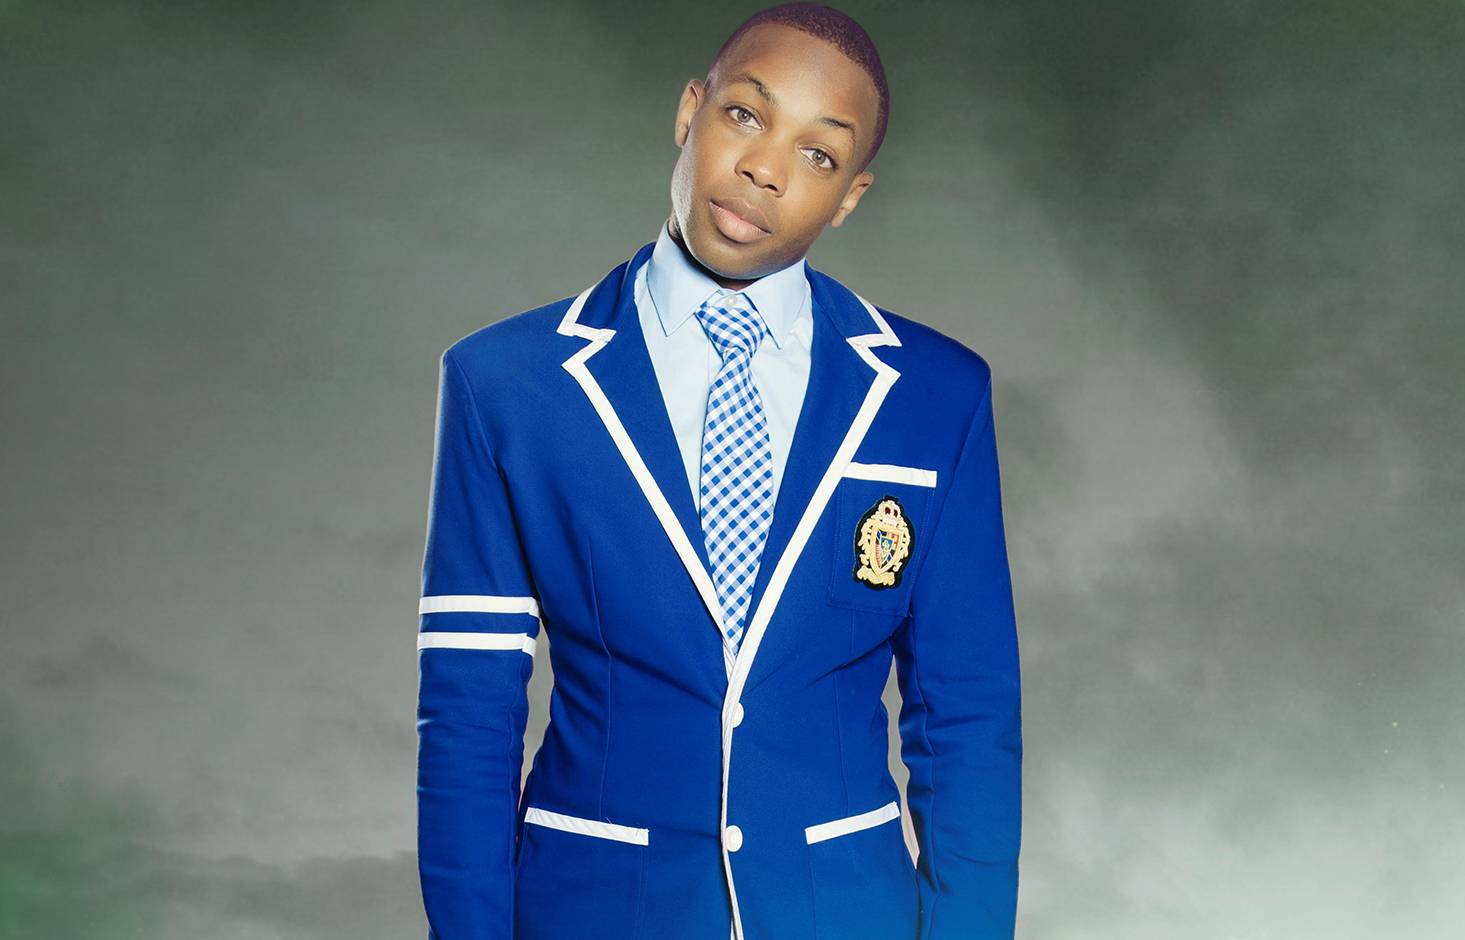 Todrick Hall Biography - 1567286697 Todrick Hall Biography